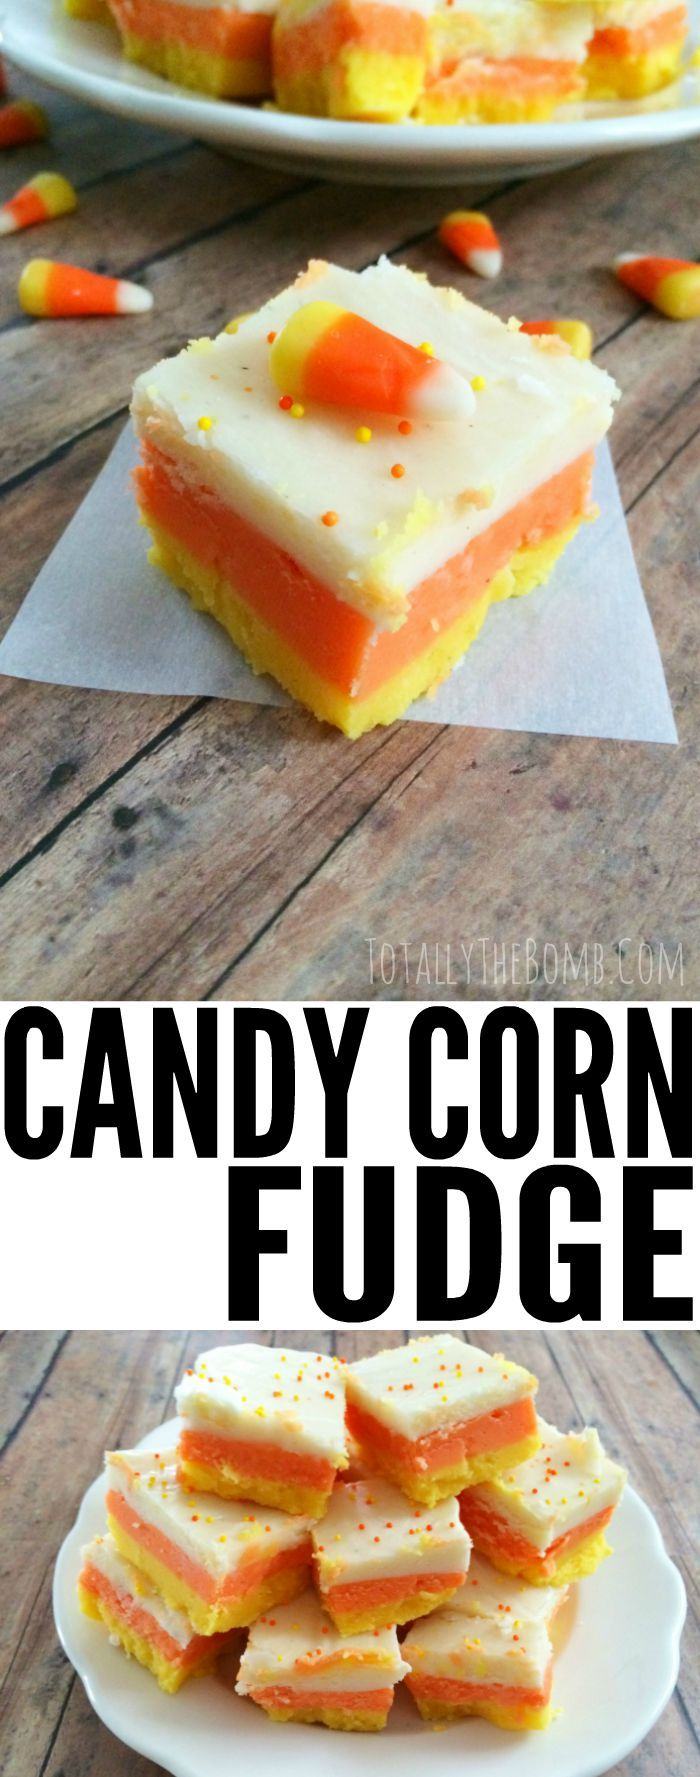 candy corn fudge                                                                                                                                                     More